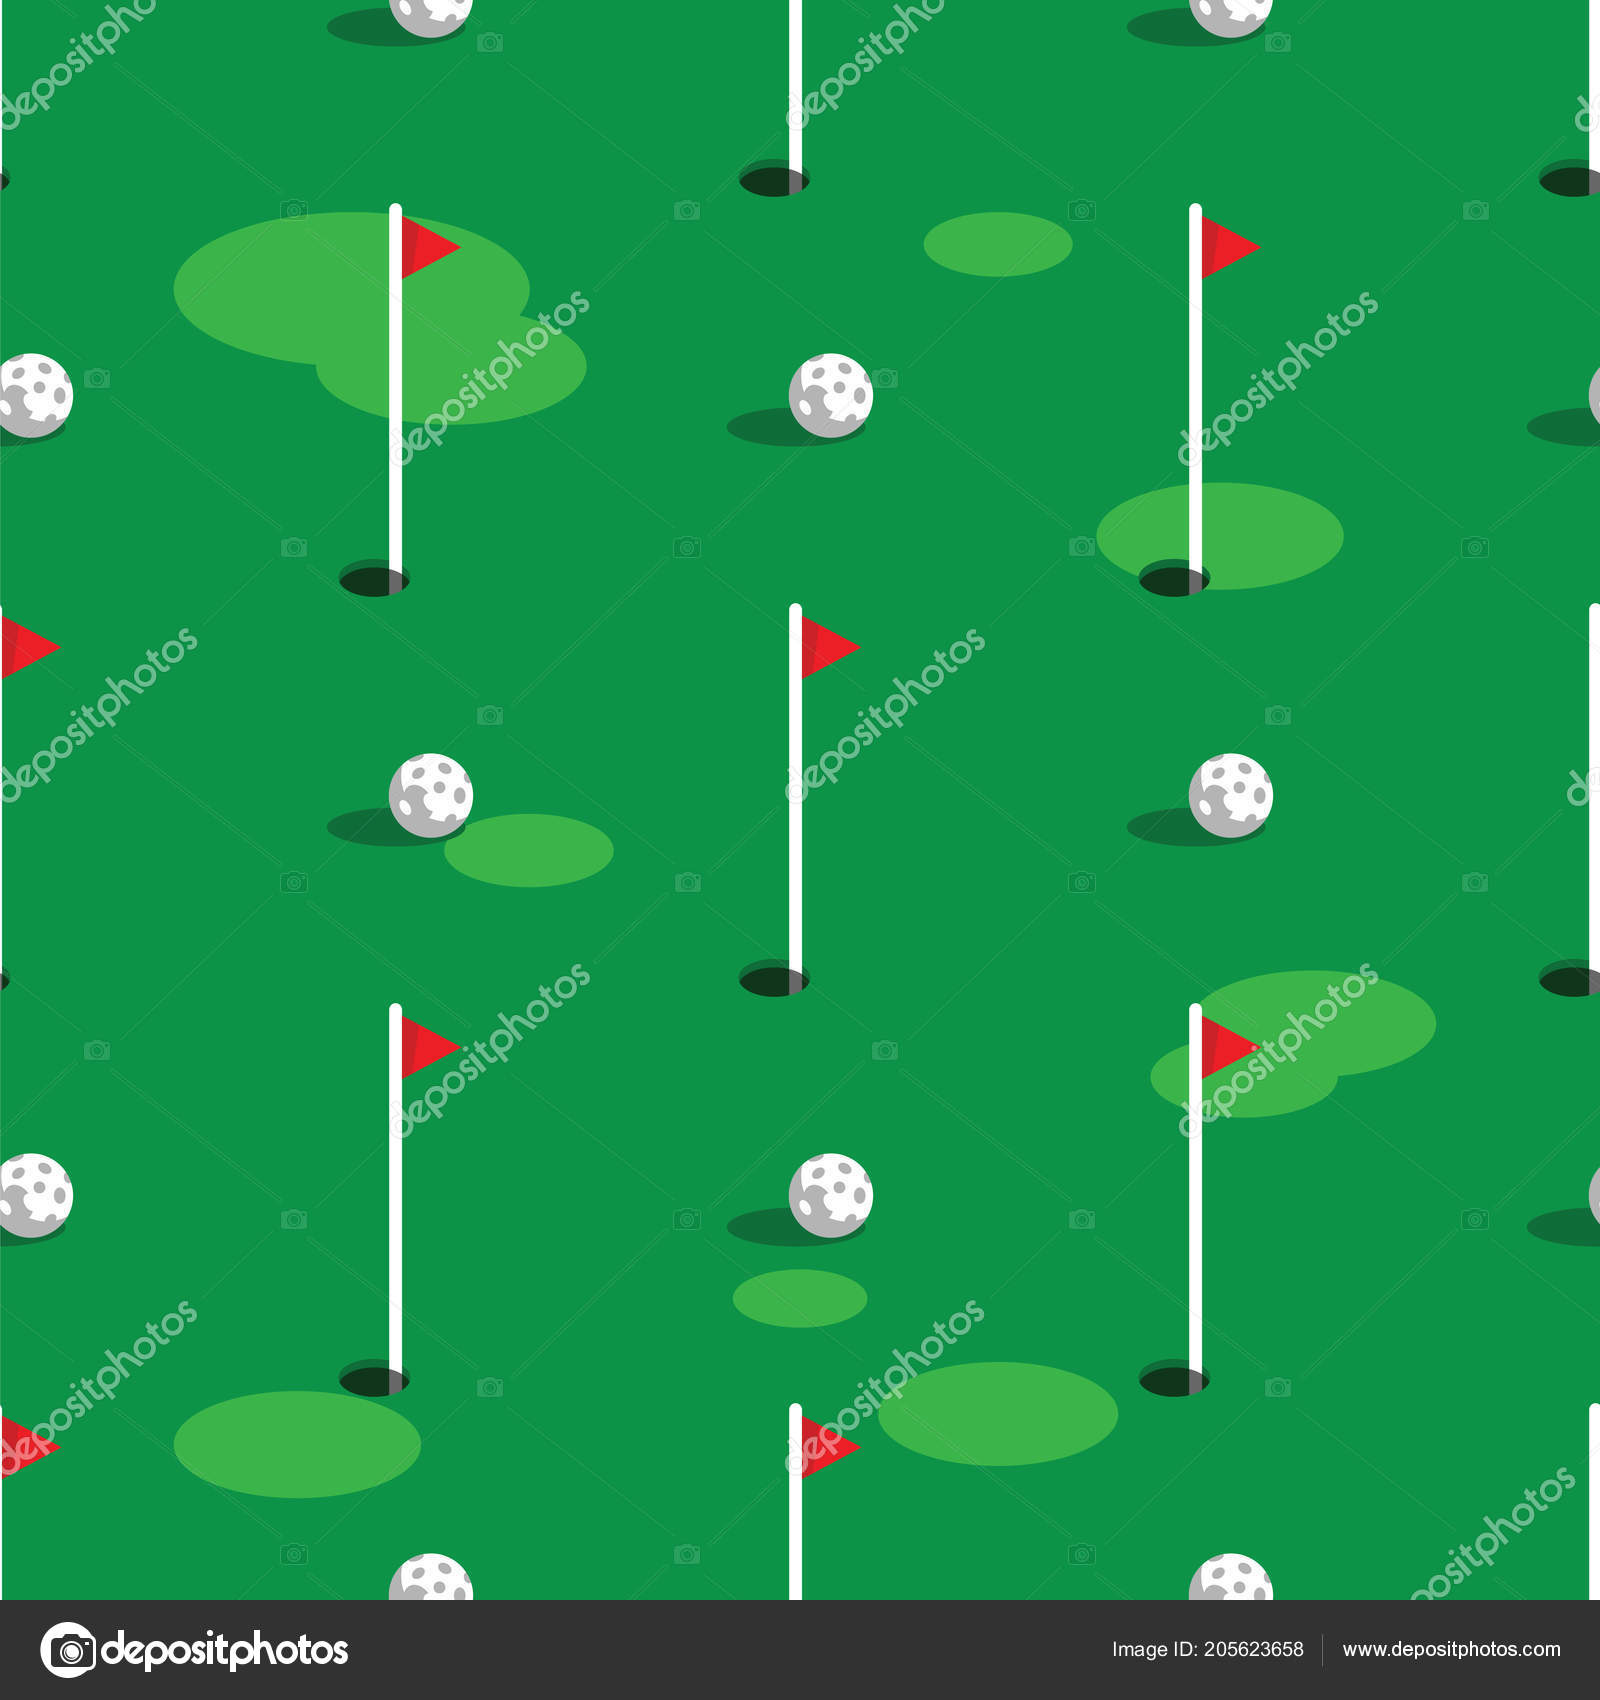 Golf Course Pattern Background Green Grass And Hole On Golf Field Flags And Balls On Green Golf Course Seamless Pattern Stock Vector C Cobectbhax Gmail Com 205623658